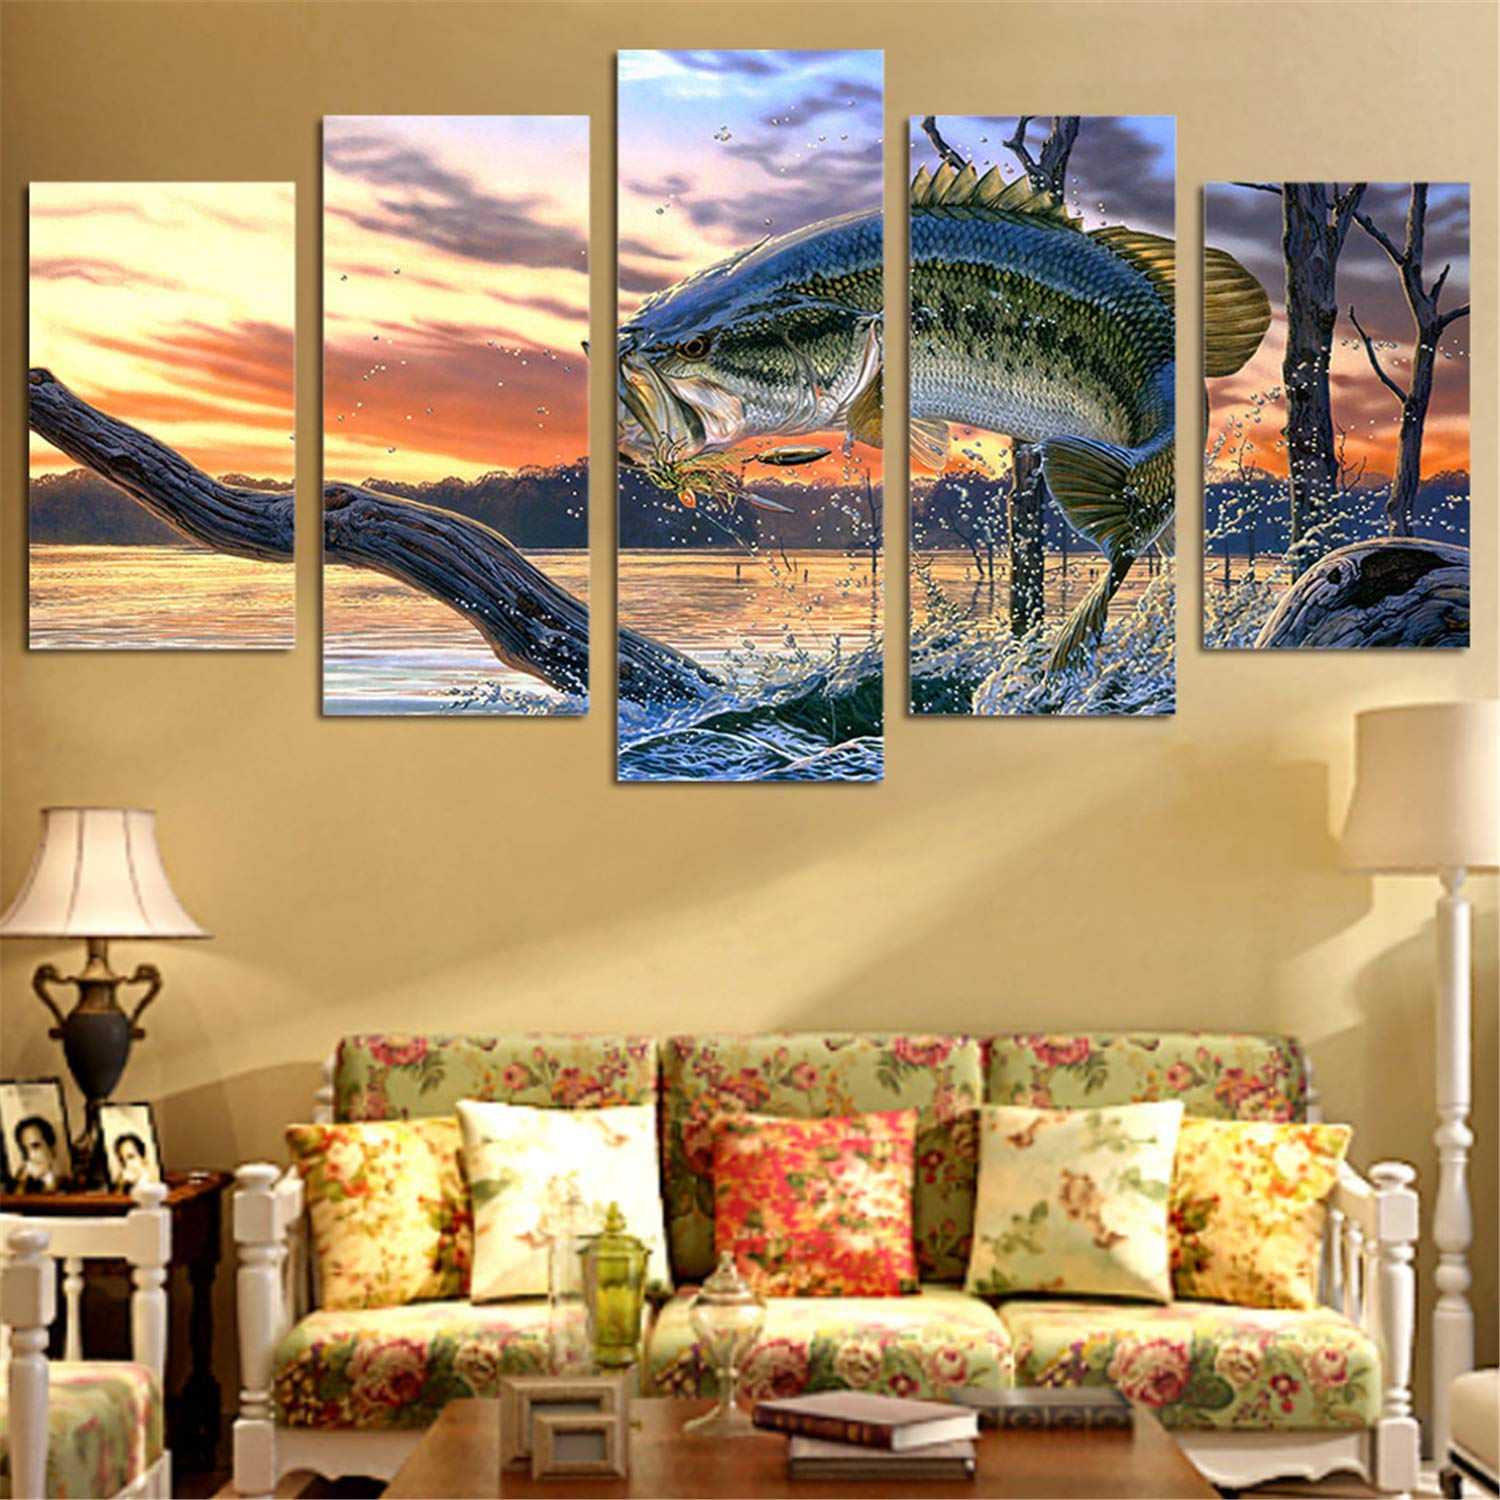 JESC Canvas Painting Home Decor Wall Art Framework 5 Pieces Jurassic Park Dinosaurs Pictures Living Room HD Prints Animal